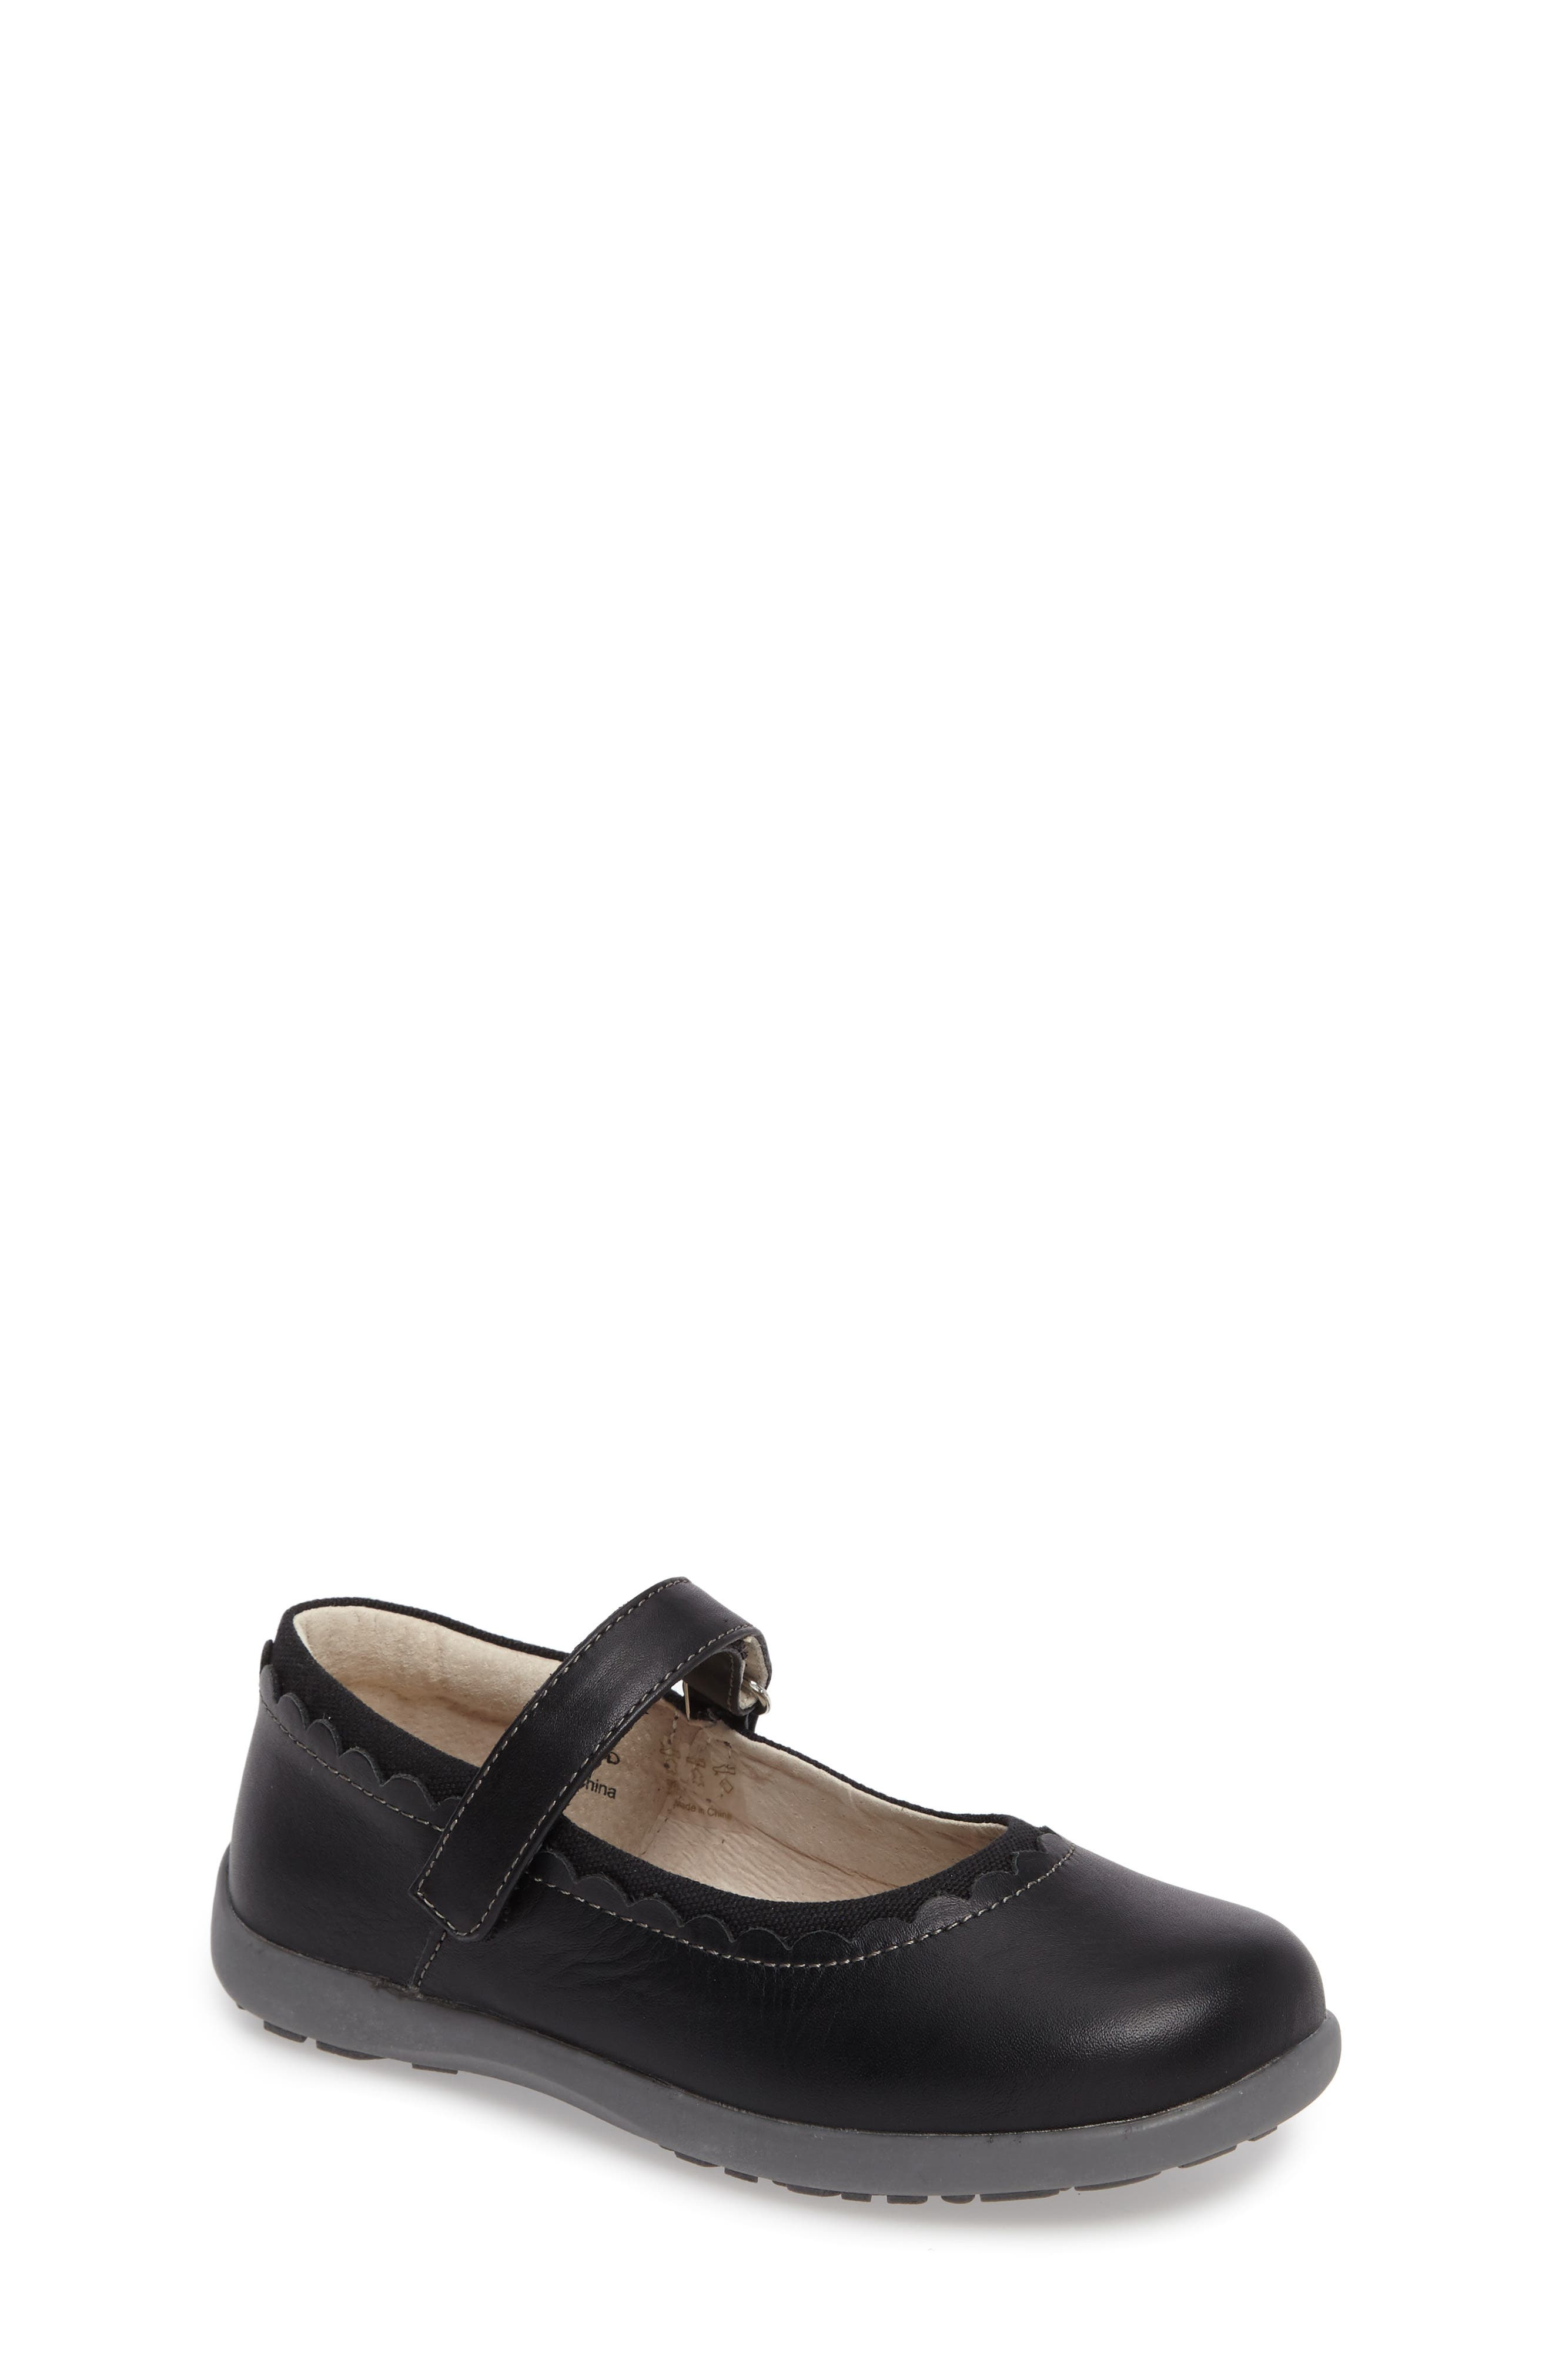 Jane Mary Jane Flat,                         Main,                         color, 001